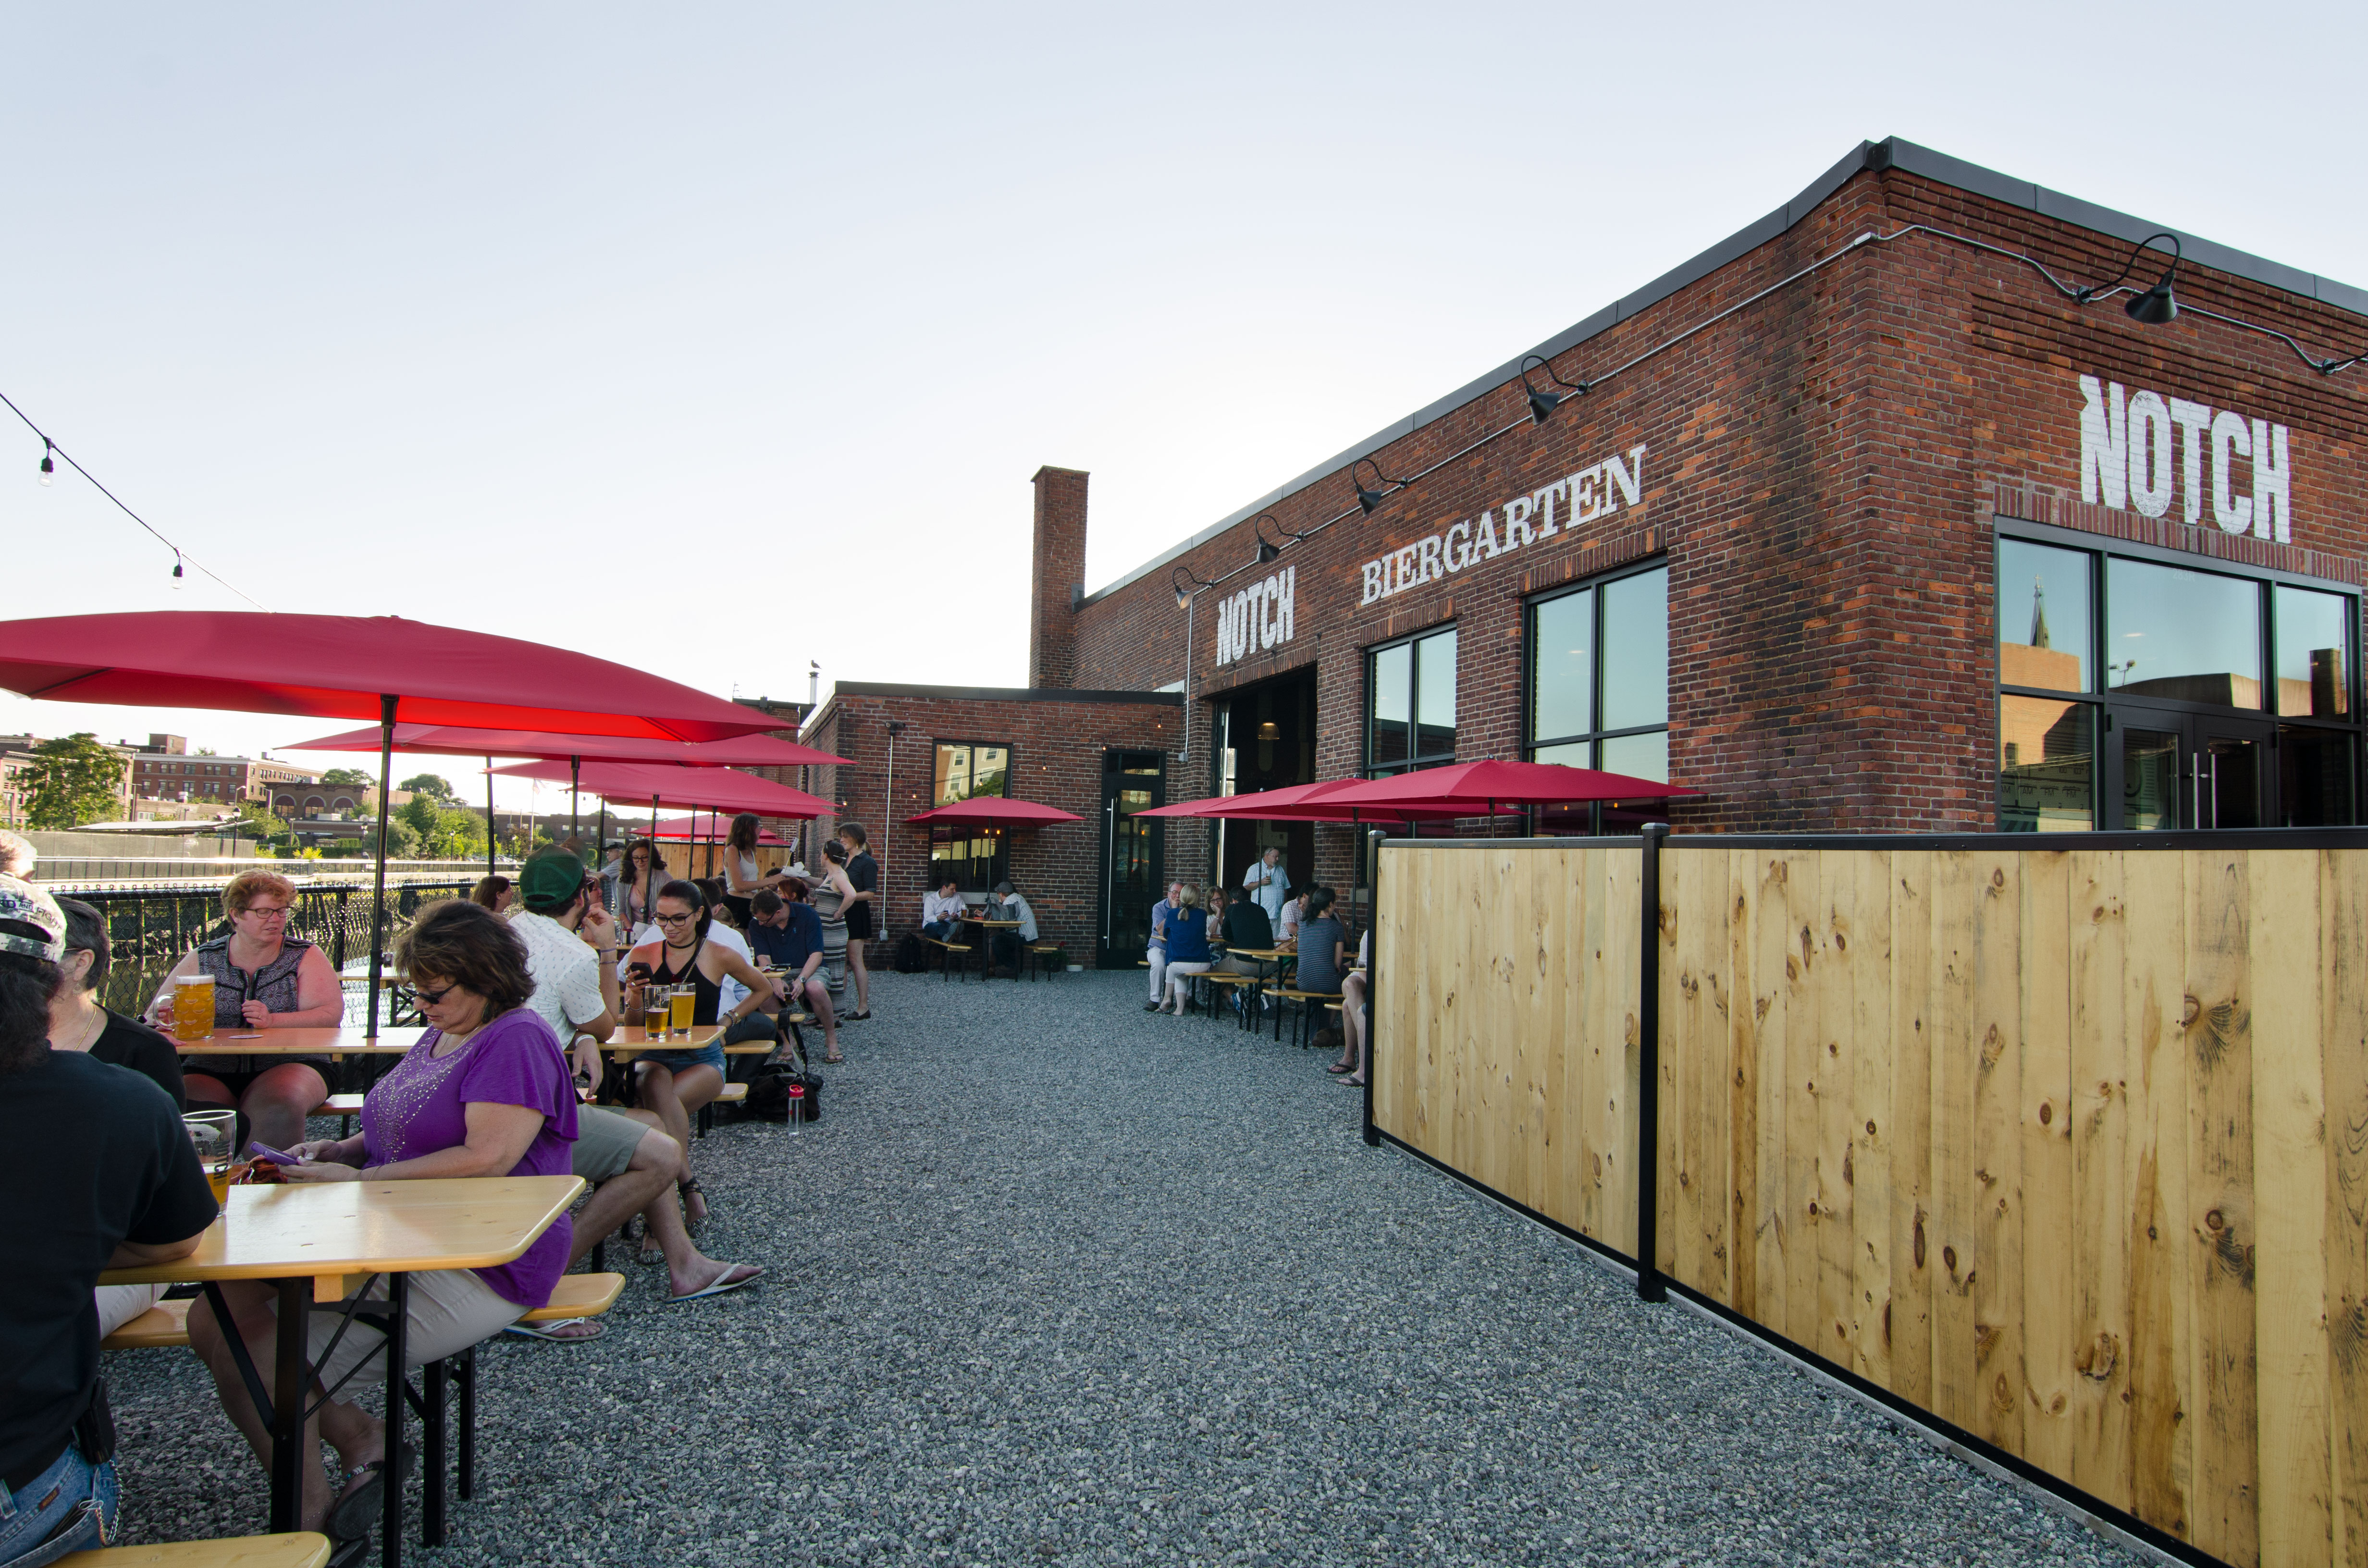 Notch Brewery and Tap Room